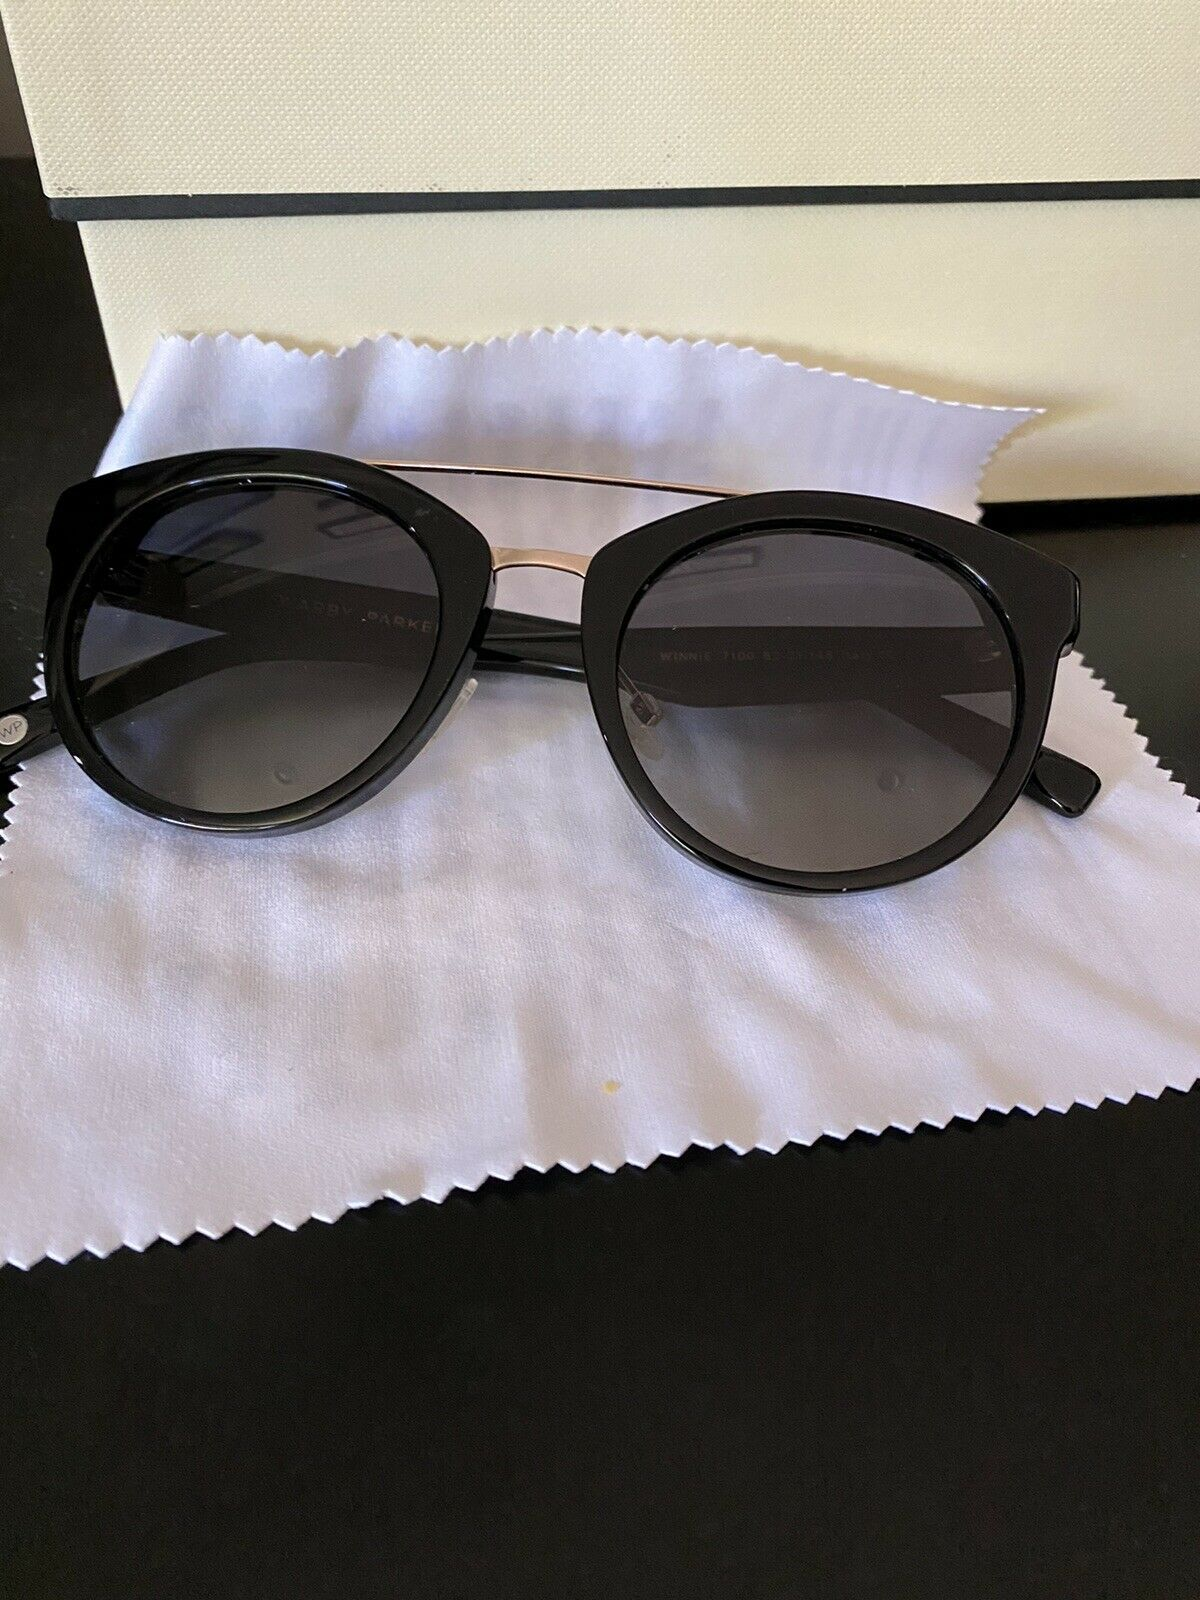 Warby Parker Winnie Sunglasses (made In Italy) - image 8